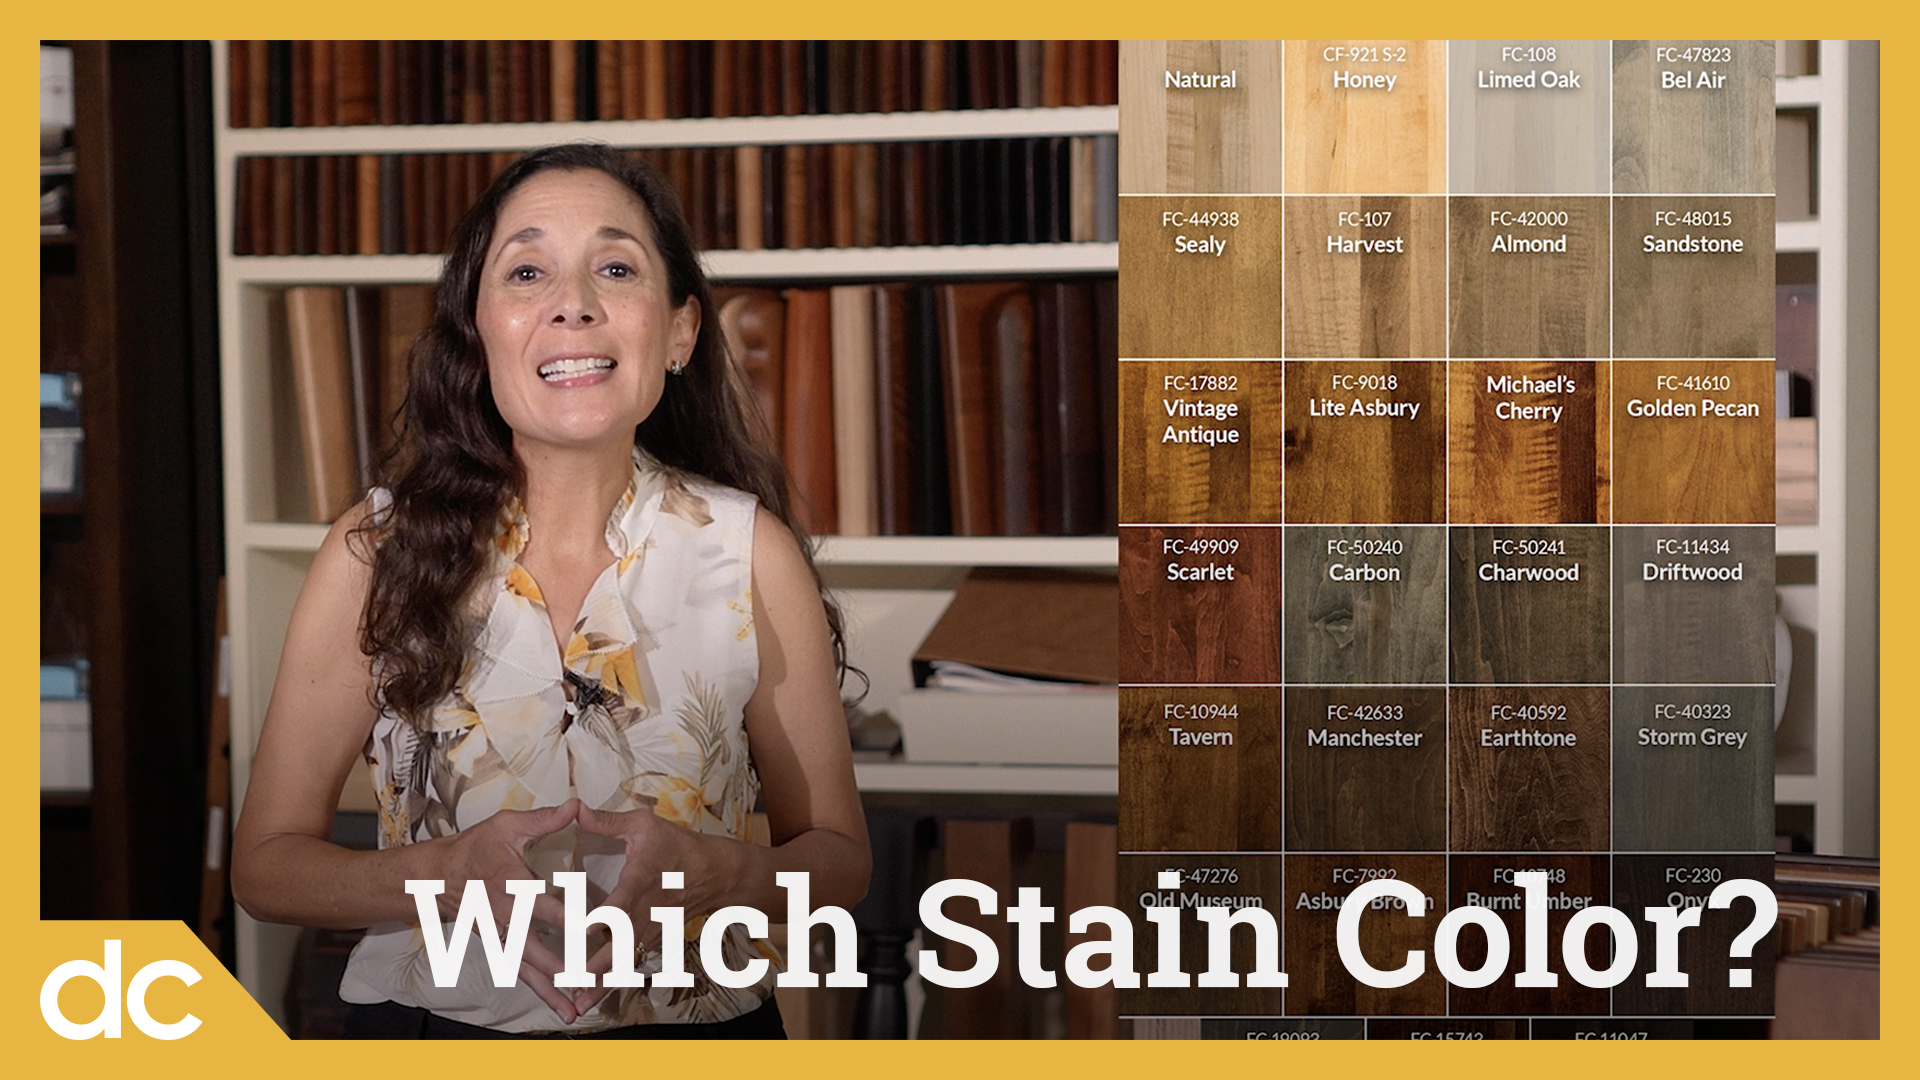 Which Stain Color or Wood Finish for Furniture? Video Title